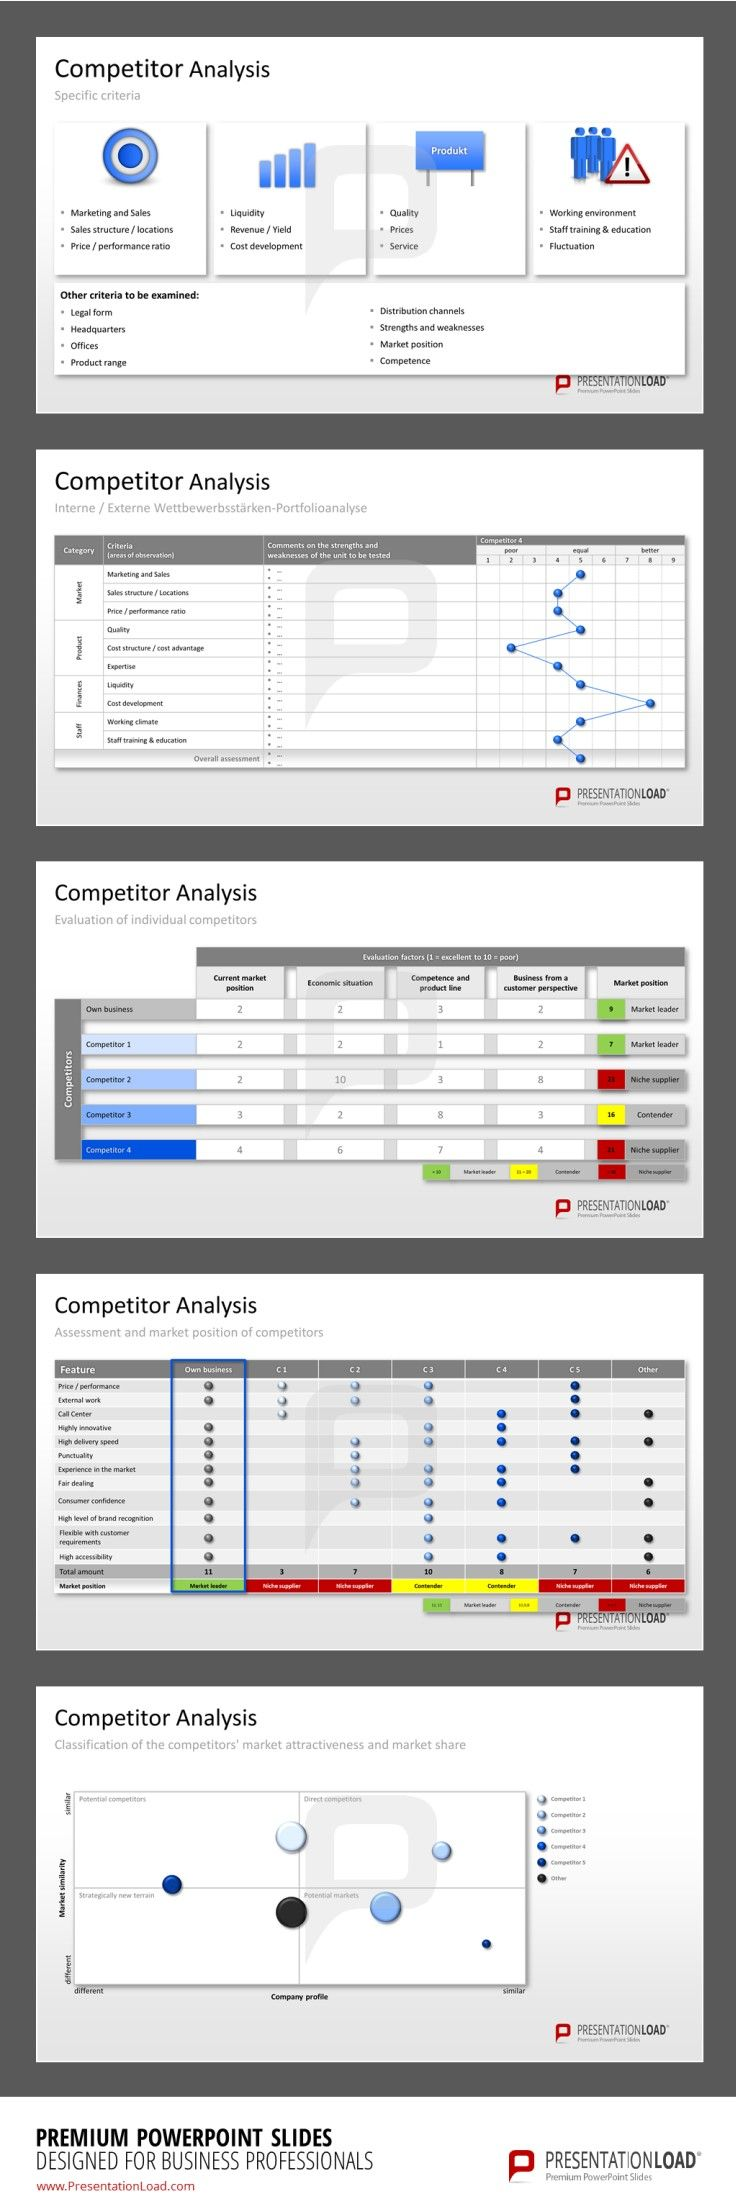 Competitor Analysis PowerPoint Templates Evaluate Competitors by their current market position, economic situation, competence, customer perspective and market position. You can also classify them according to their market attractiveness and market share. #presentationload http://www.presentationload.com/competitor-analysis.html